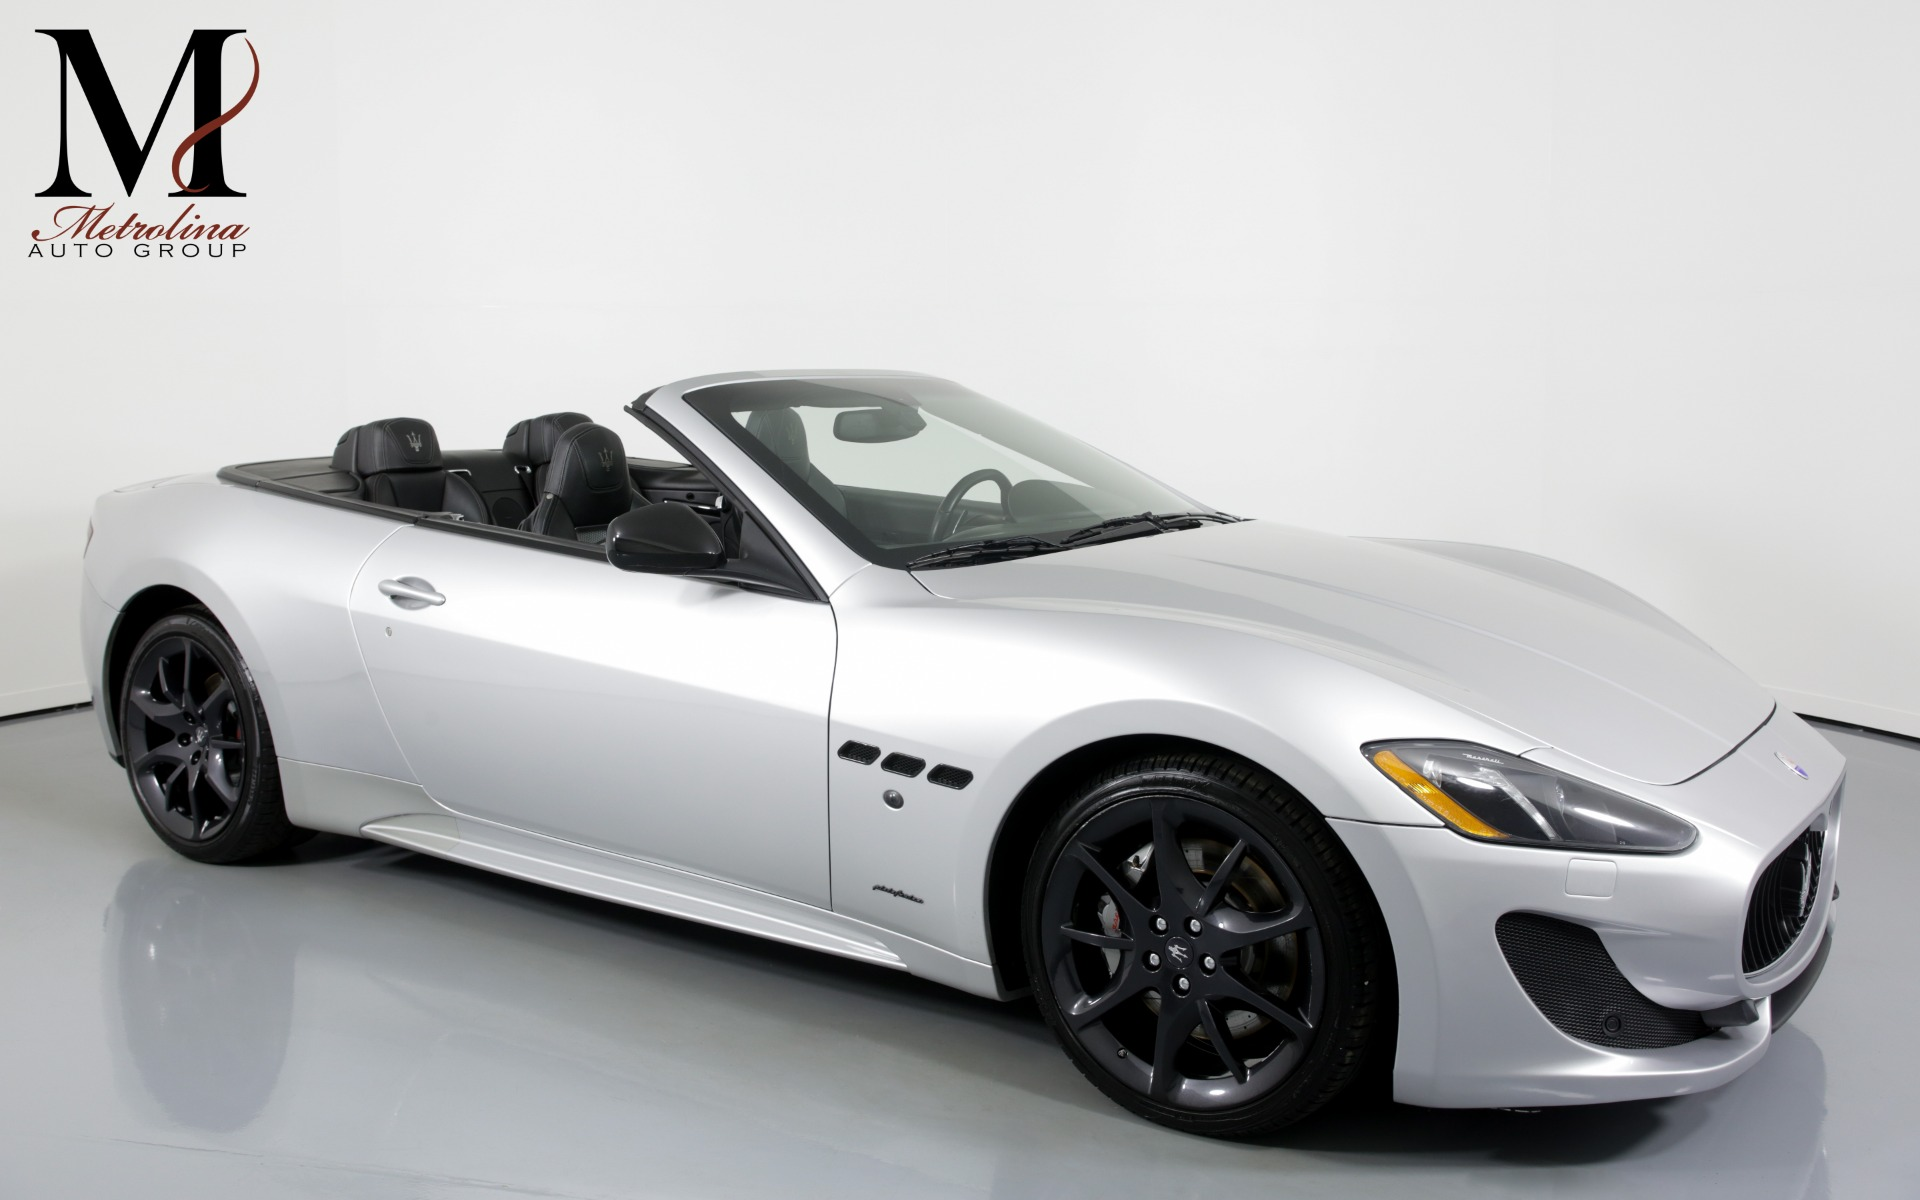 Used 2014 Maserati GranTurismo Sport 2dr Convertible for sale $54,996 at Metrolina Auto Group in Charlotte NC 28217 - 1